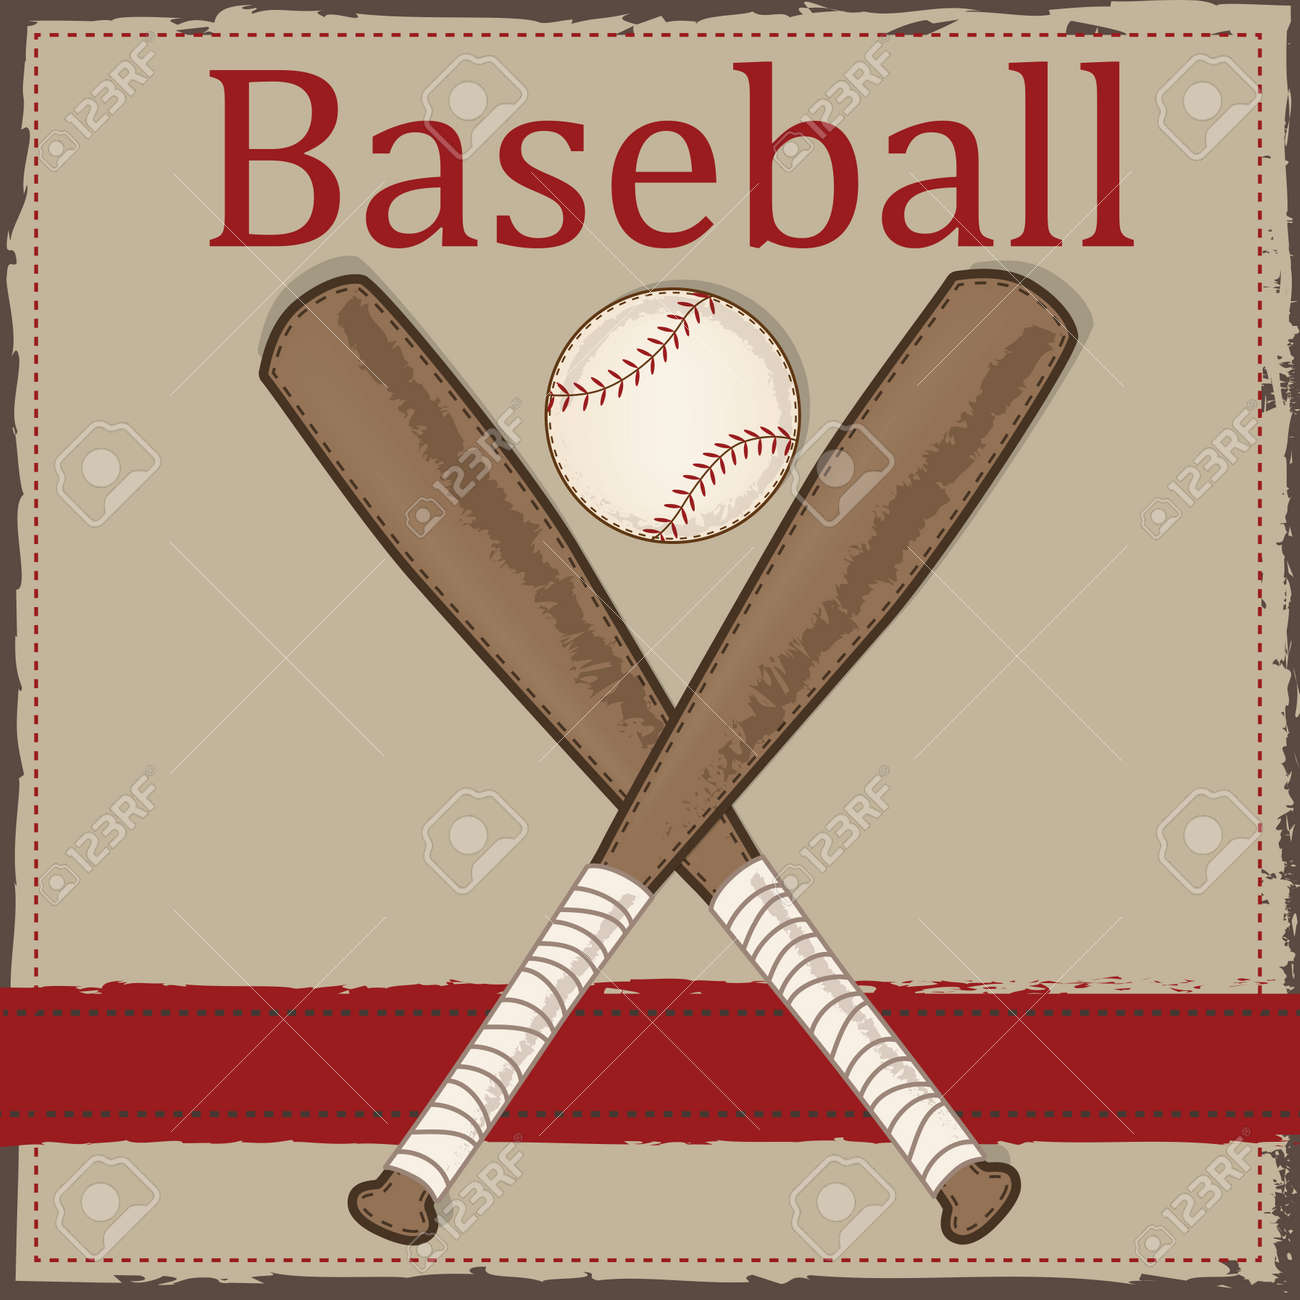 Vintage Baseball And Wooden Bat Layout For Scrapbooking Cards